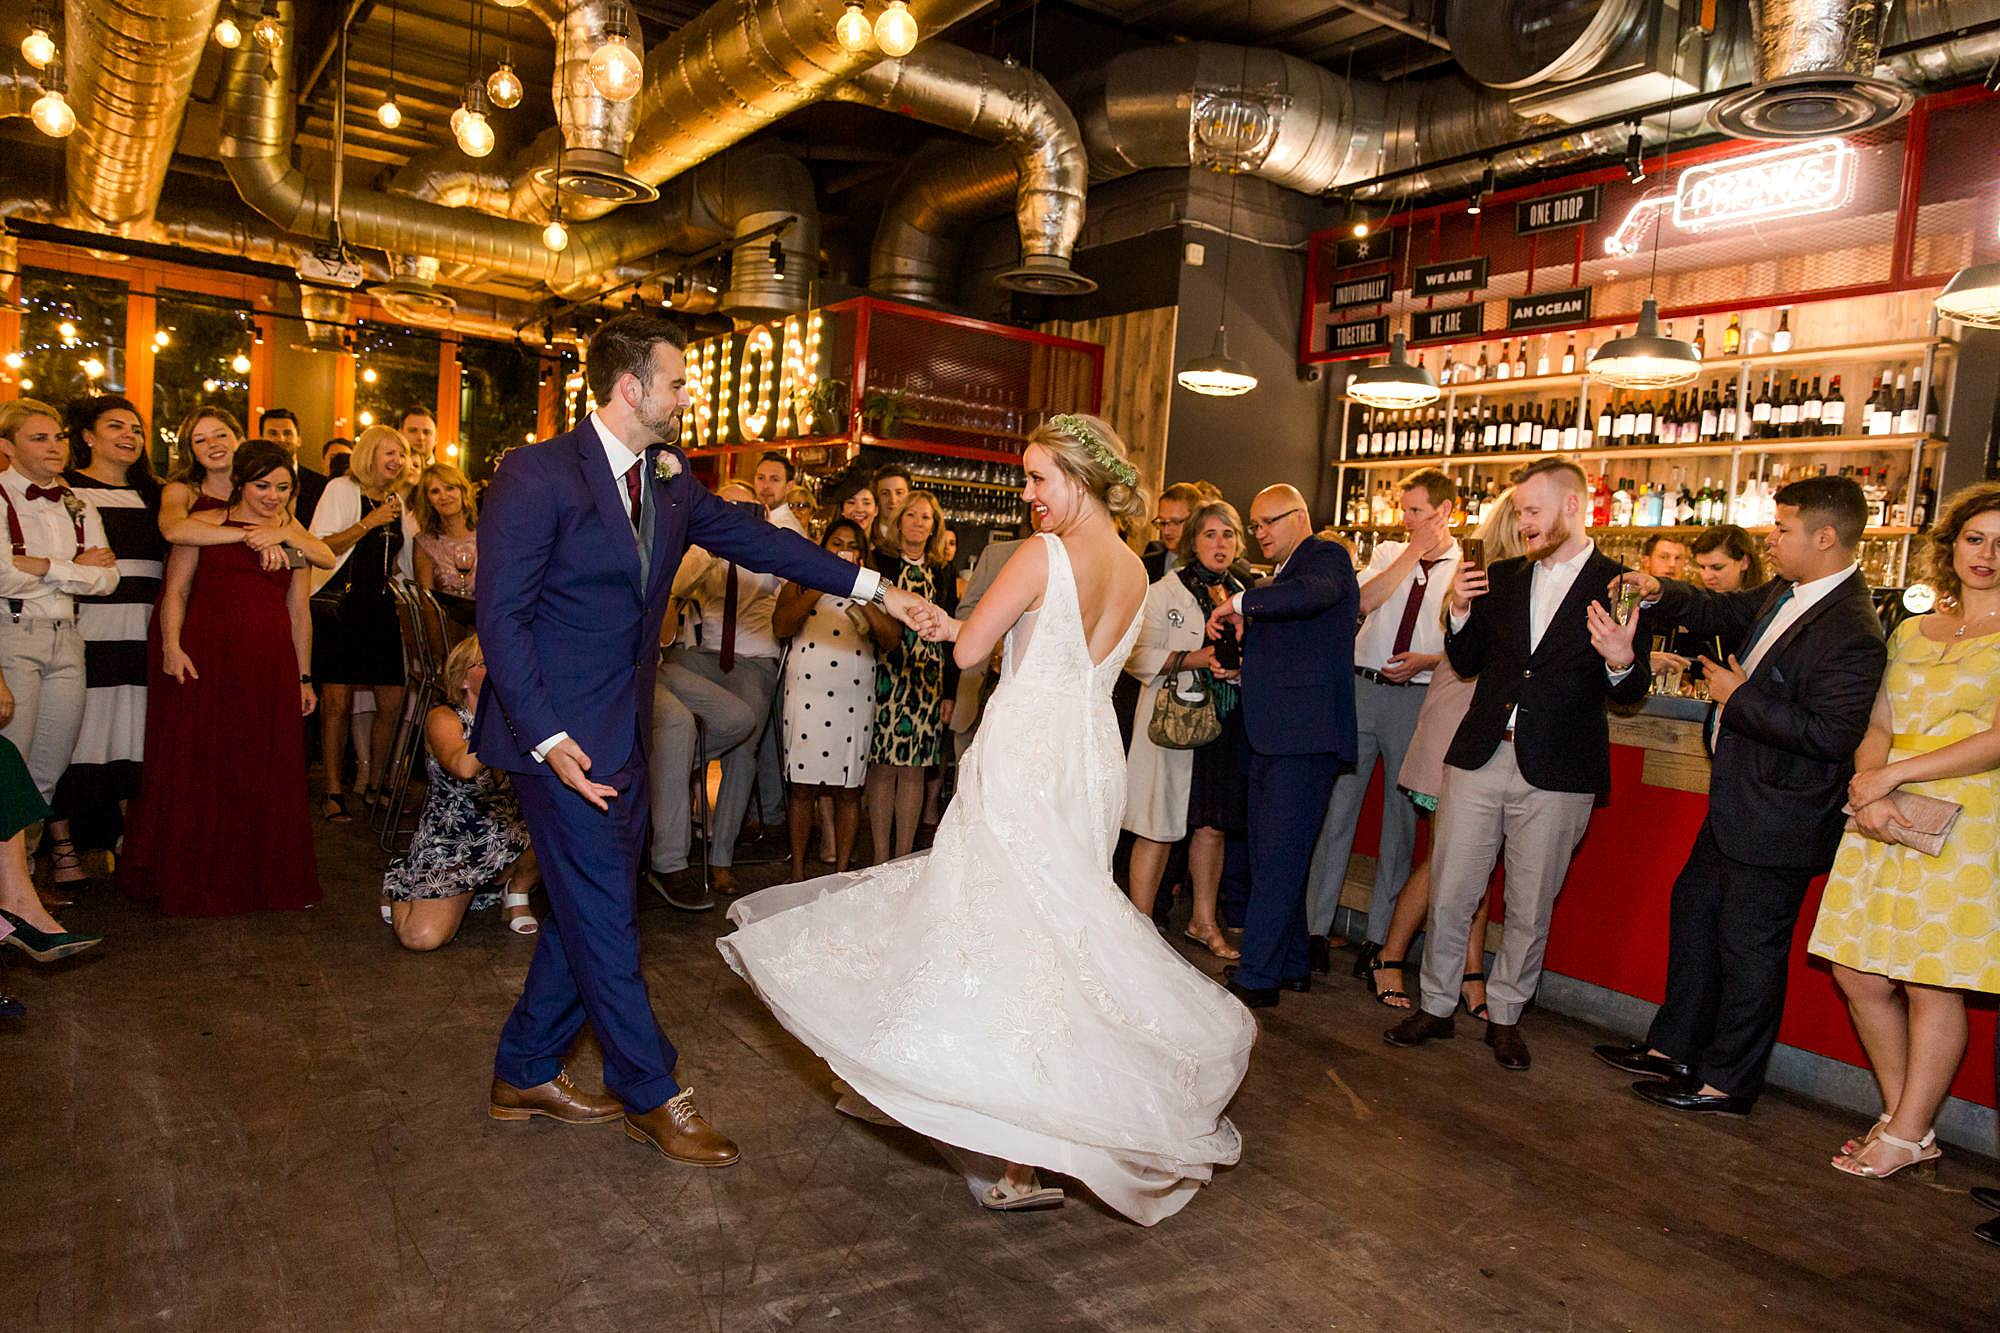 The Union Paddington wedding groom twirls bride for first dance